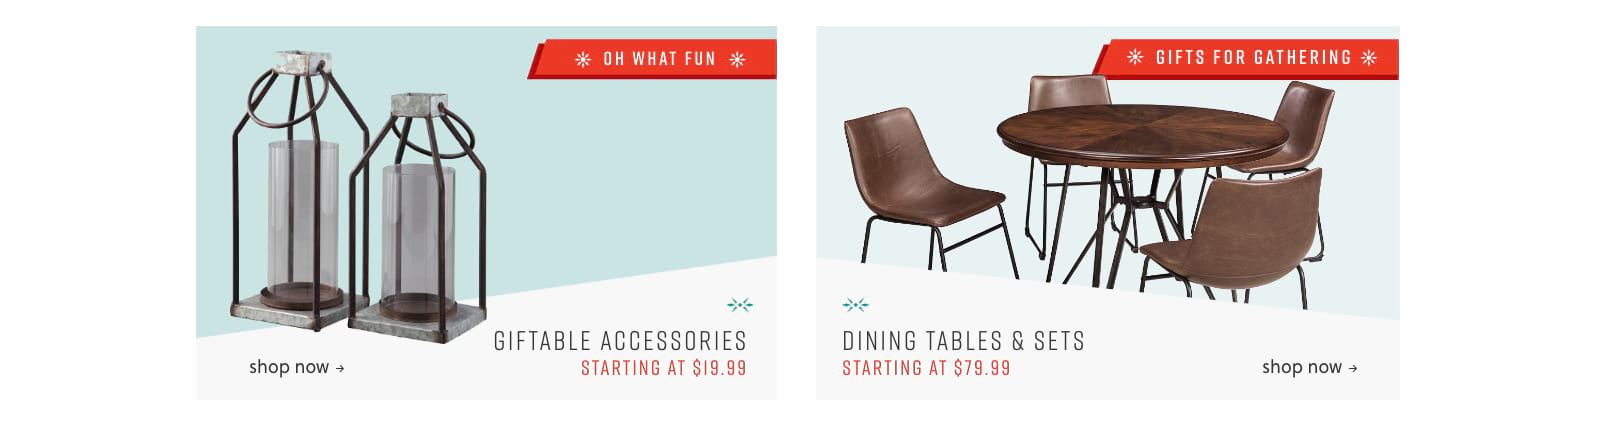 Giftable Accessories, Dining Tables and Sets